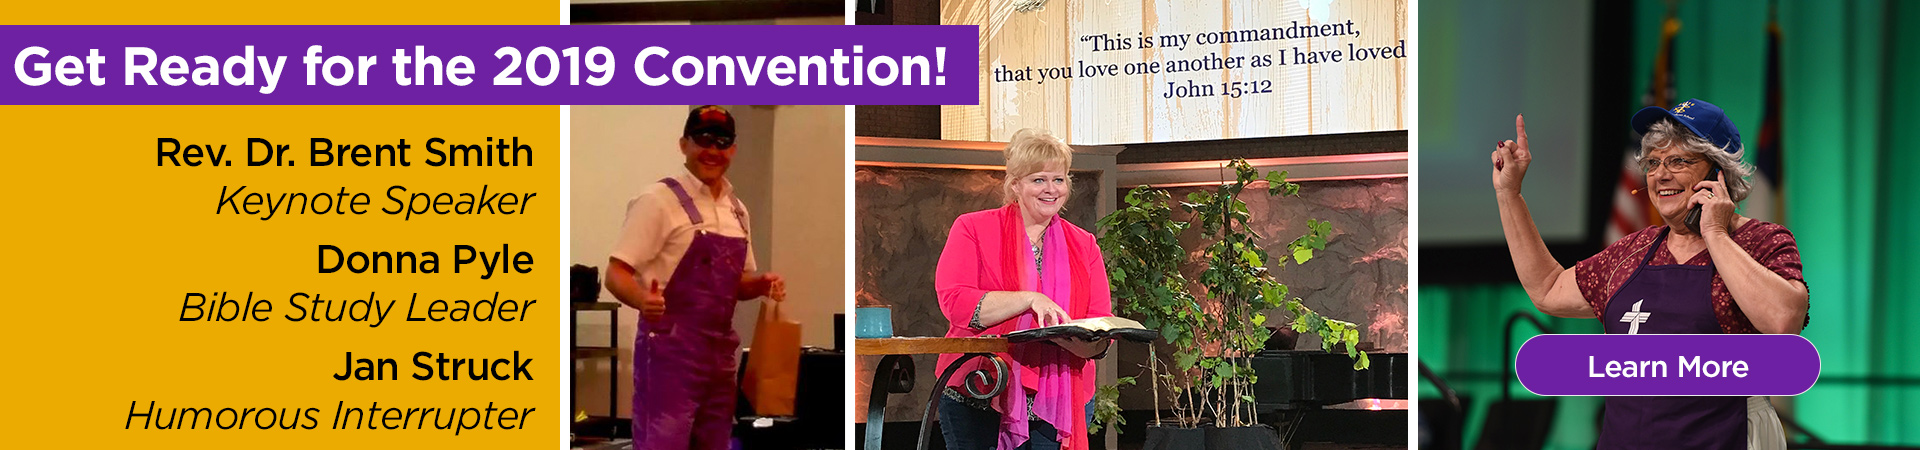 Be inspired at the 2019 Convention by Rev. Dr. Brent Smith, Donna Pyle, and Jan Struck!